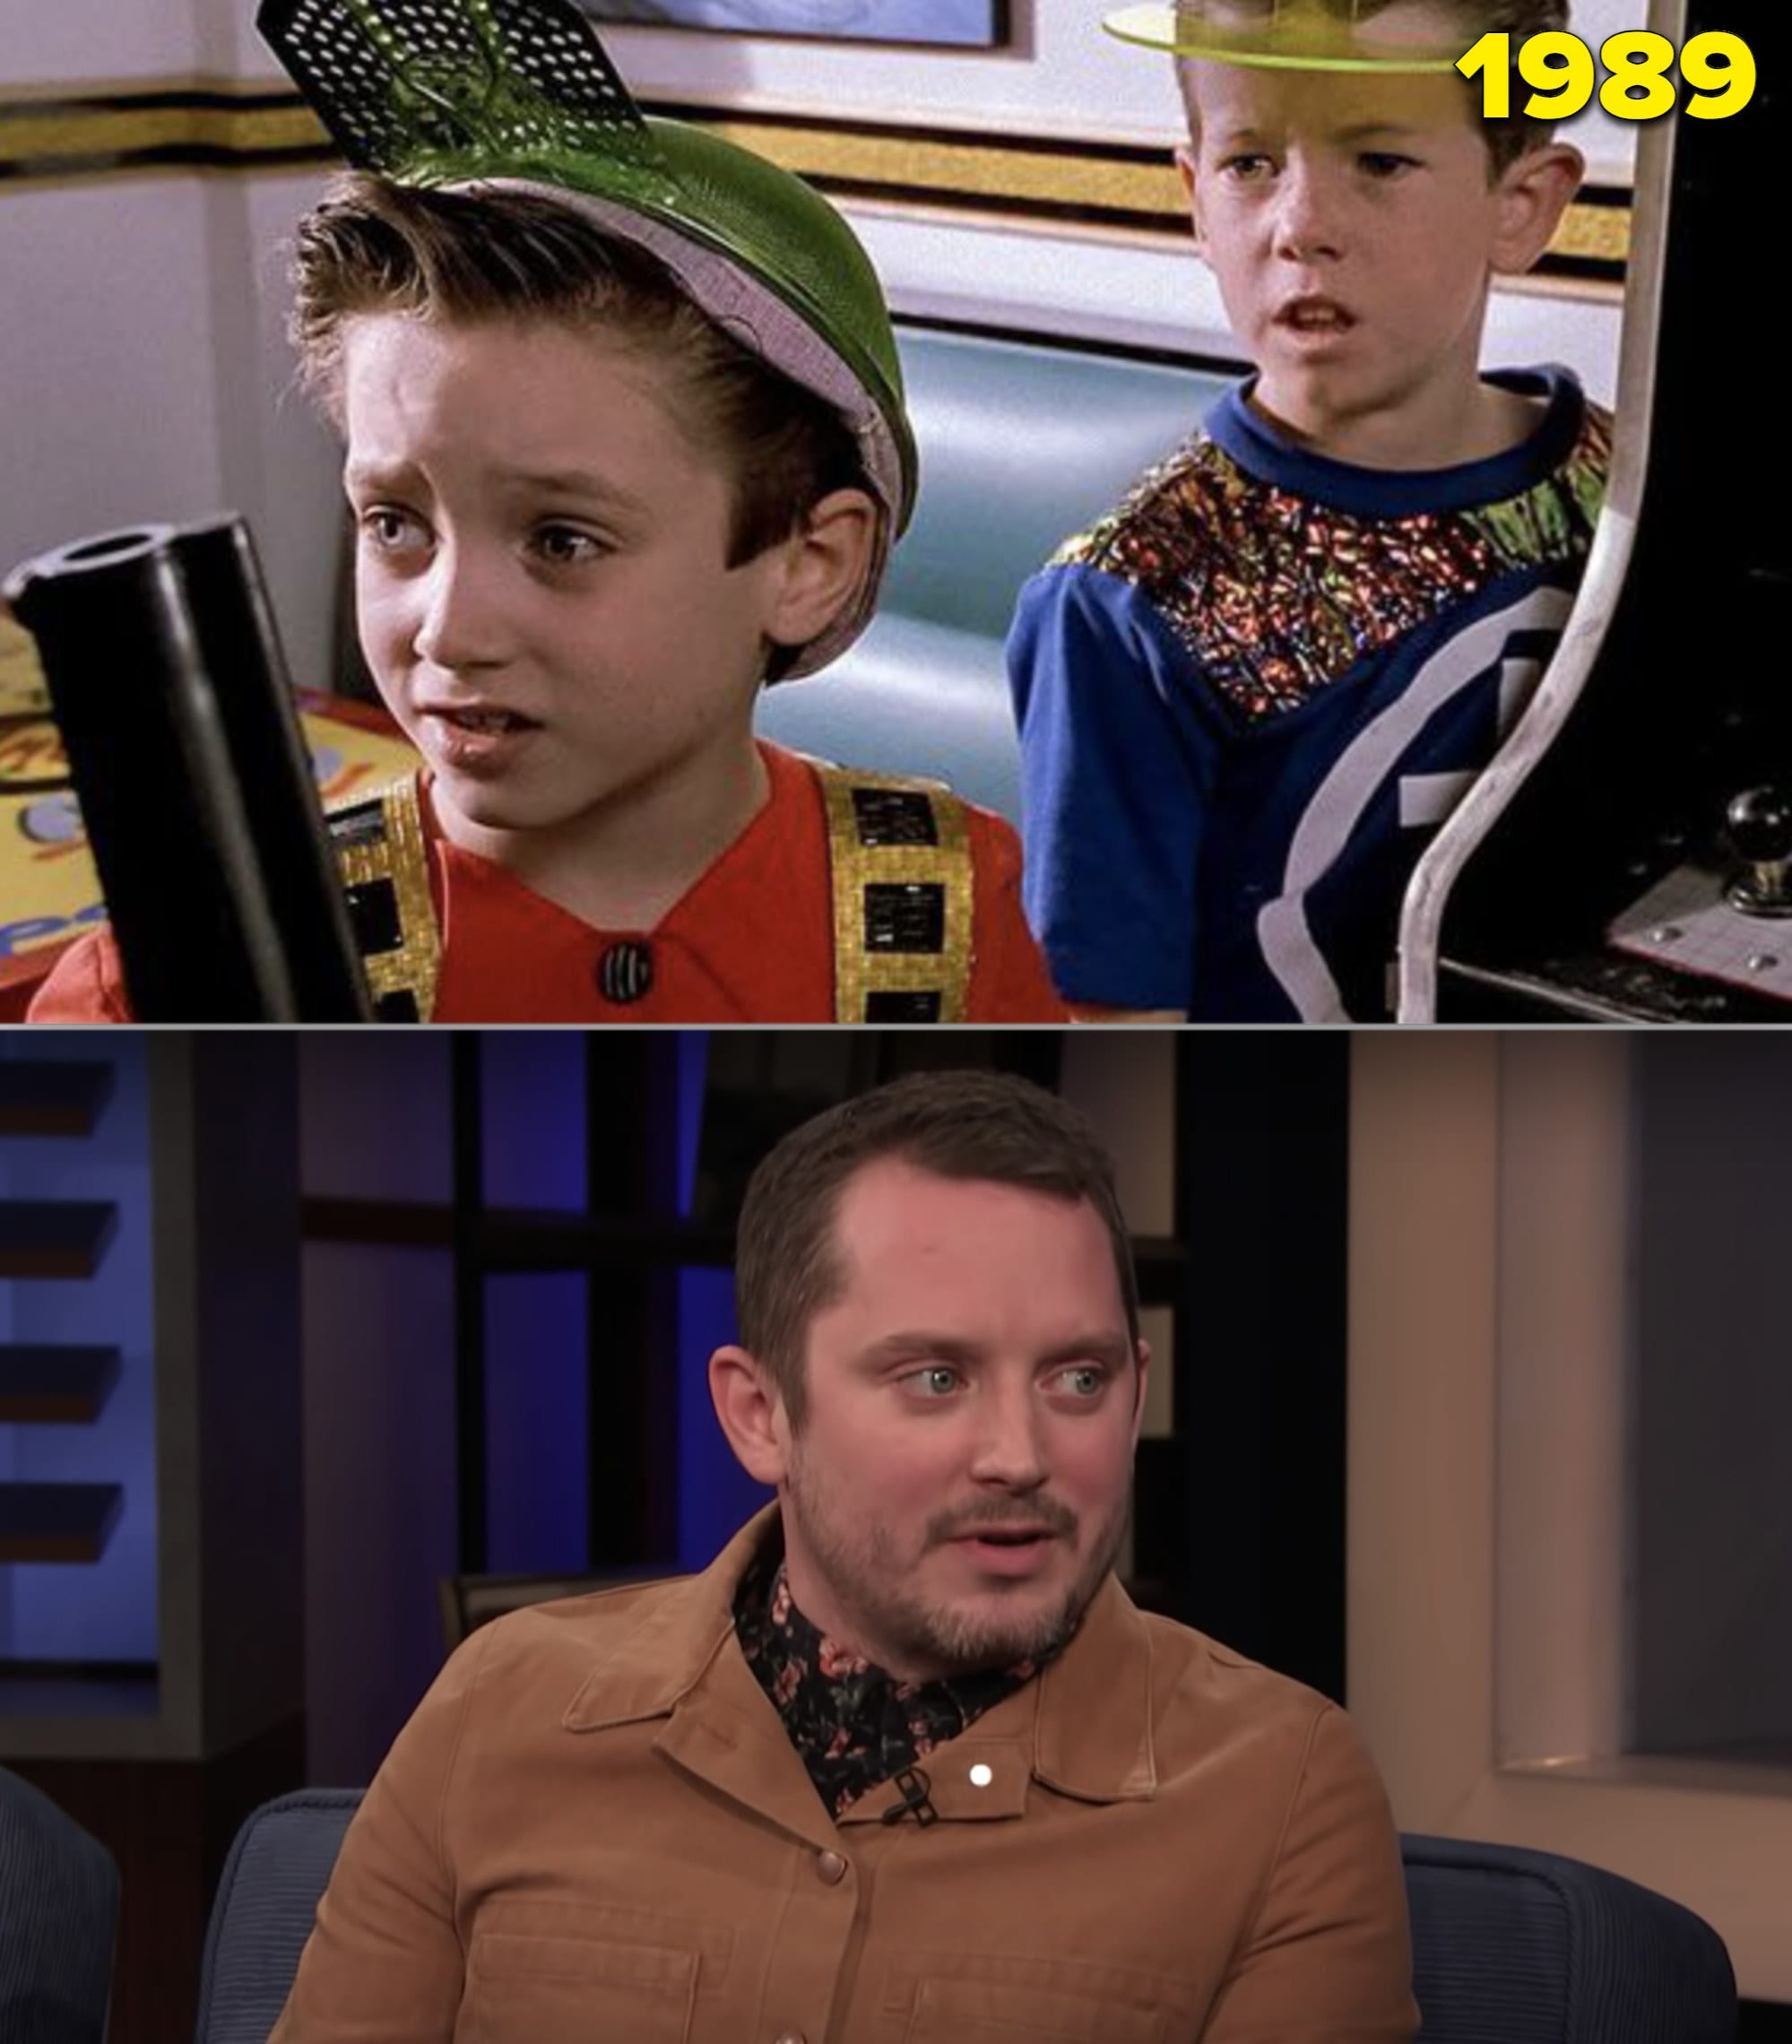 """Elijah Wood as a kid in """"Back to the Future Part II"""" vs. him being interviewed by Conan O'Brien in 2020"""